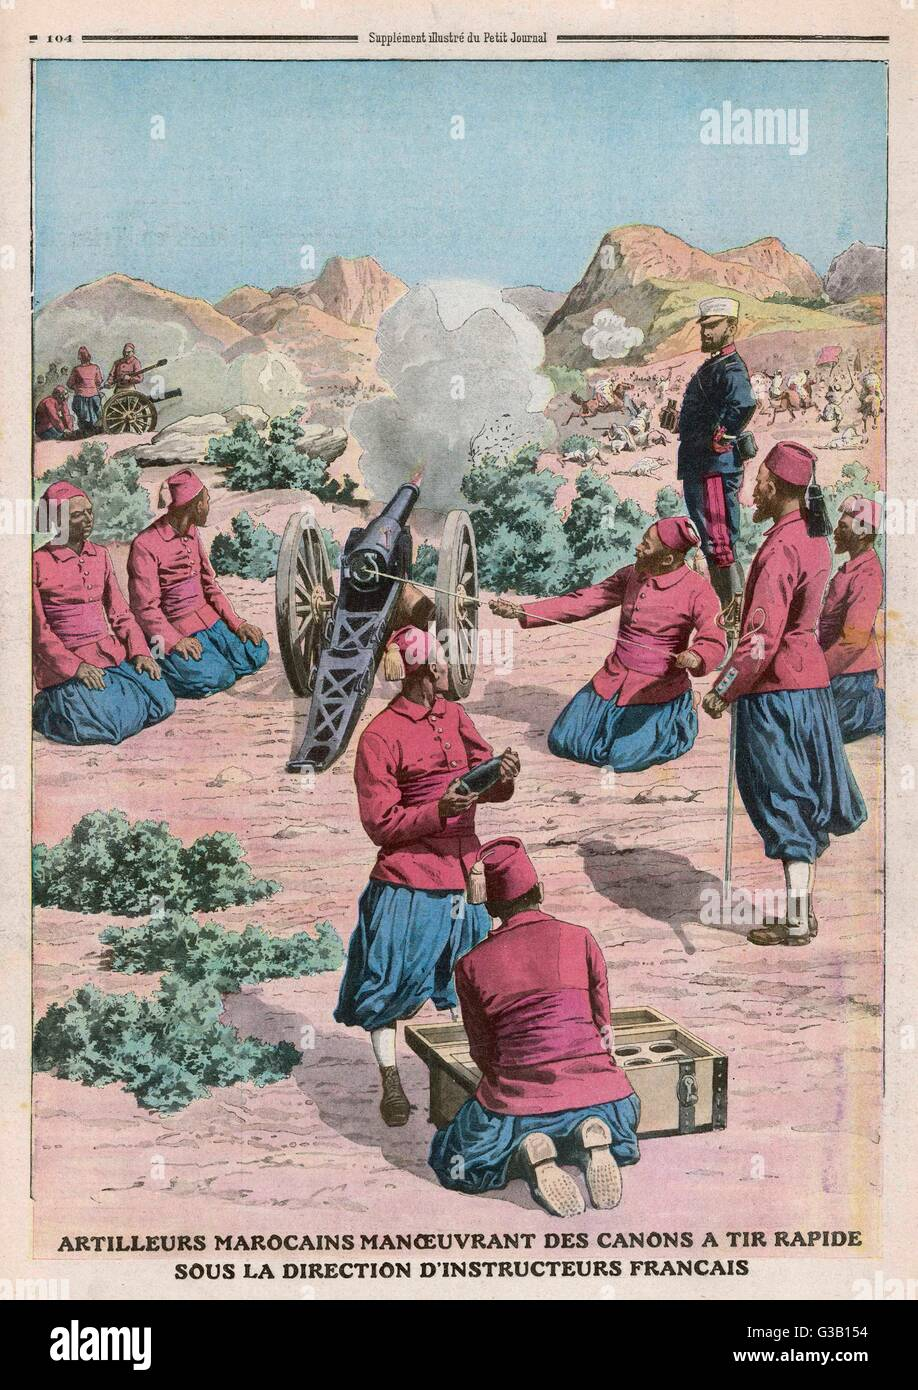 French teach Moroccans to use a quick-firing cannon        Date: 1911 - Stock Image